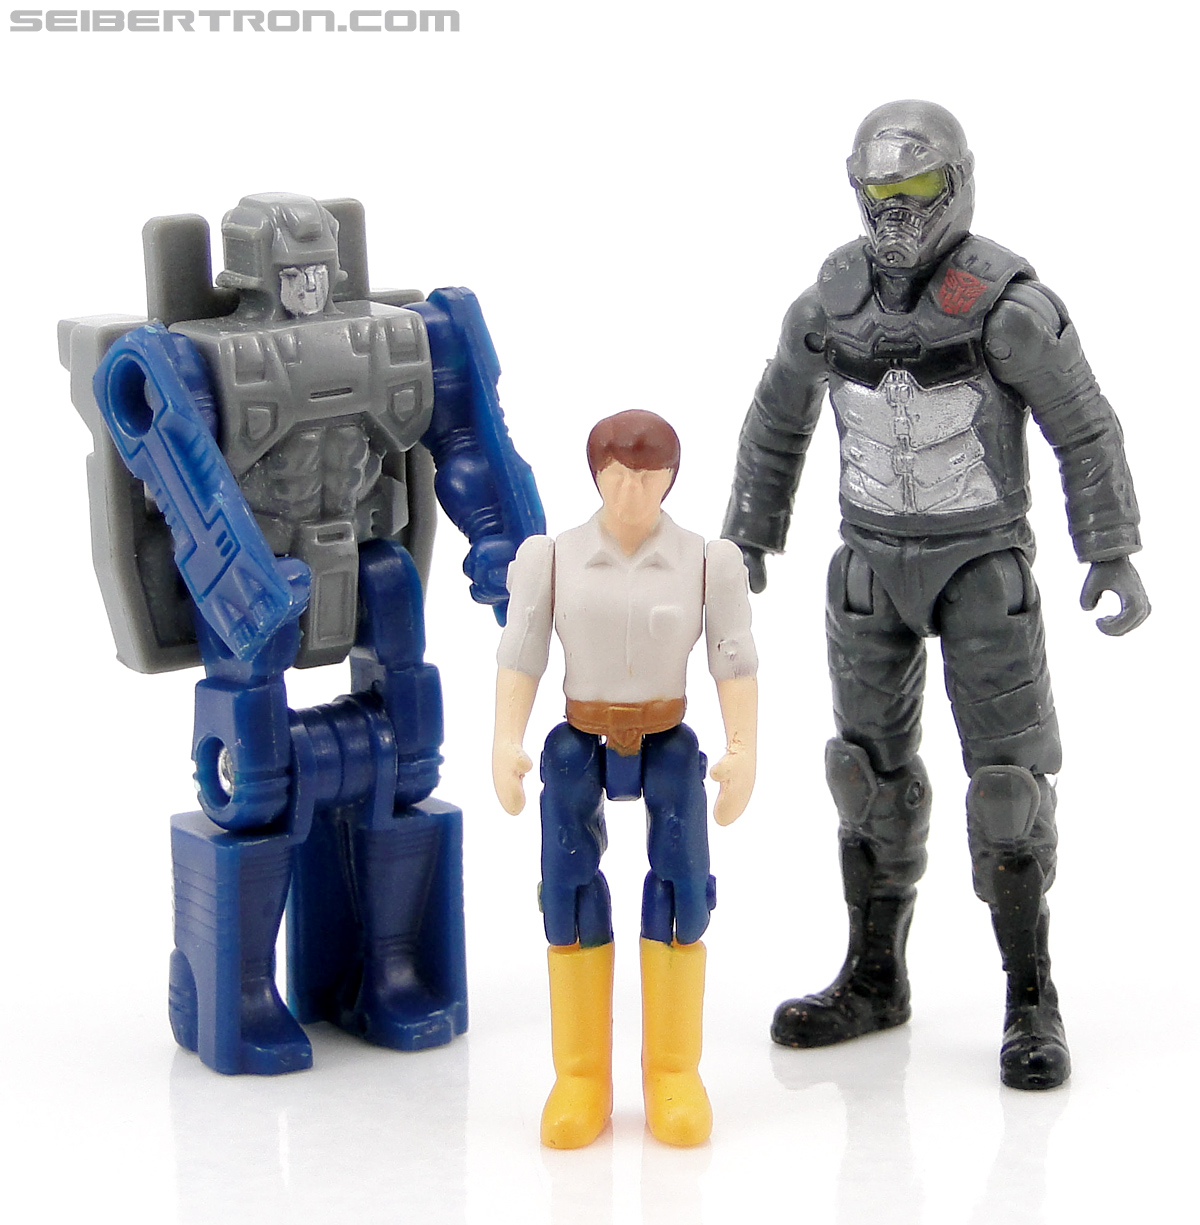 Transformers Masterpiece Spike Witwicky (Image #41 of 60)